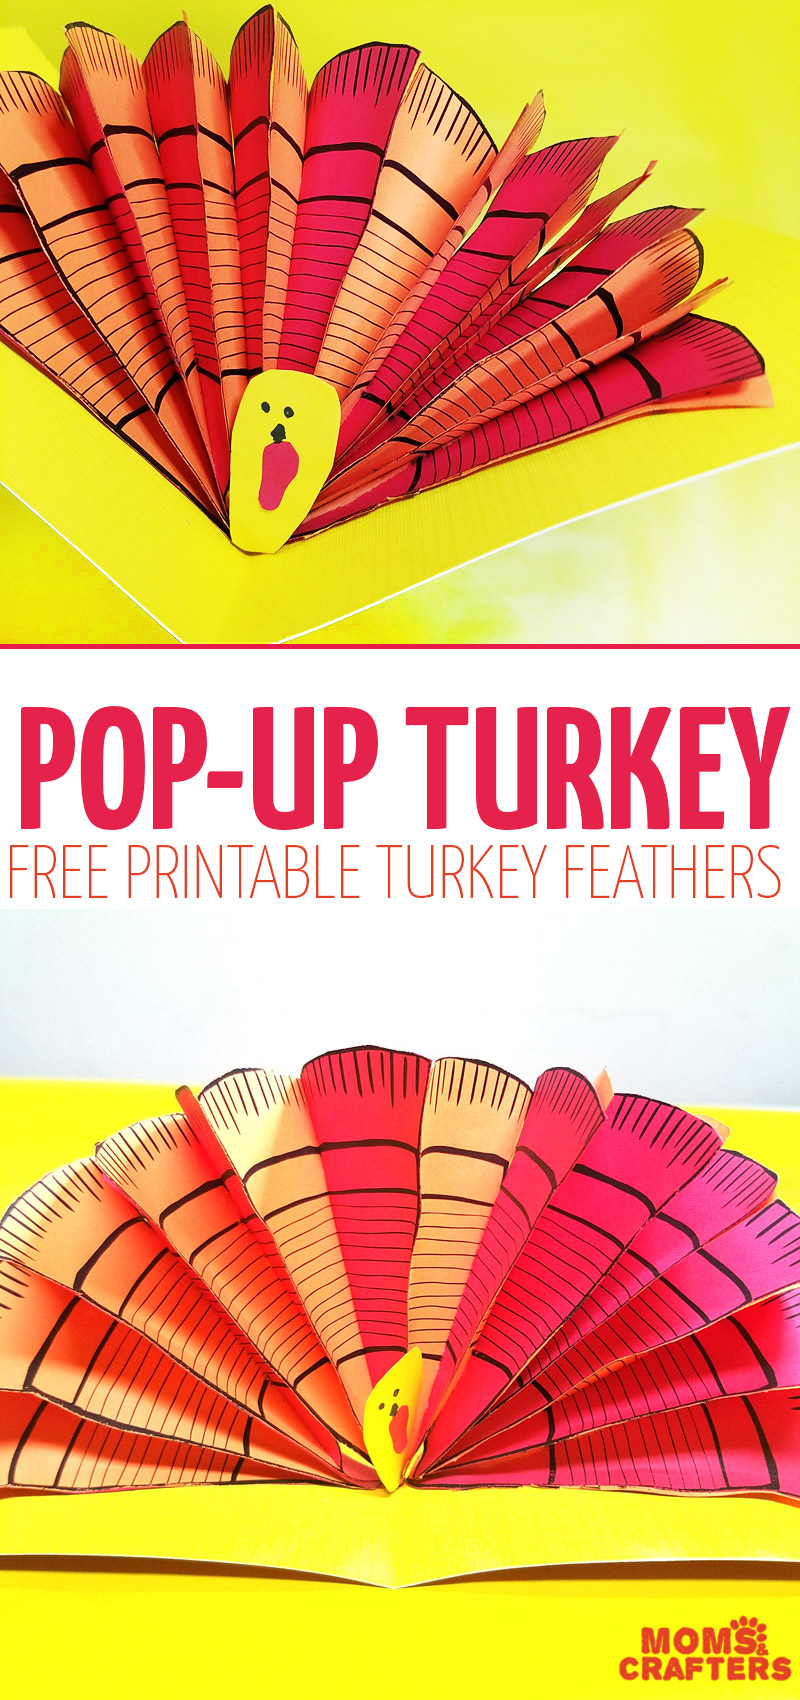 graphic relating to Turkey Feathers Printable referred to as Pop Up Turkey Craft - free of charge printable Turkey feathers * Mothers